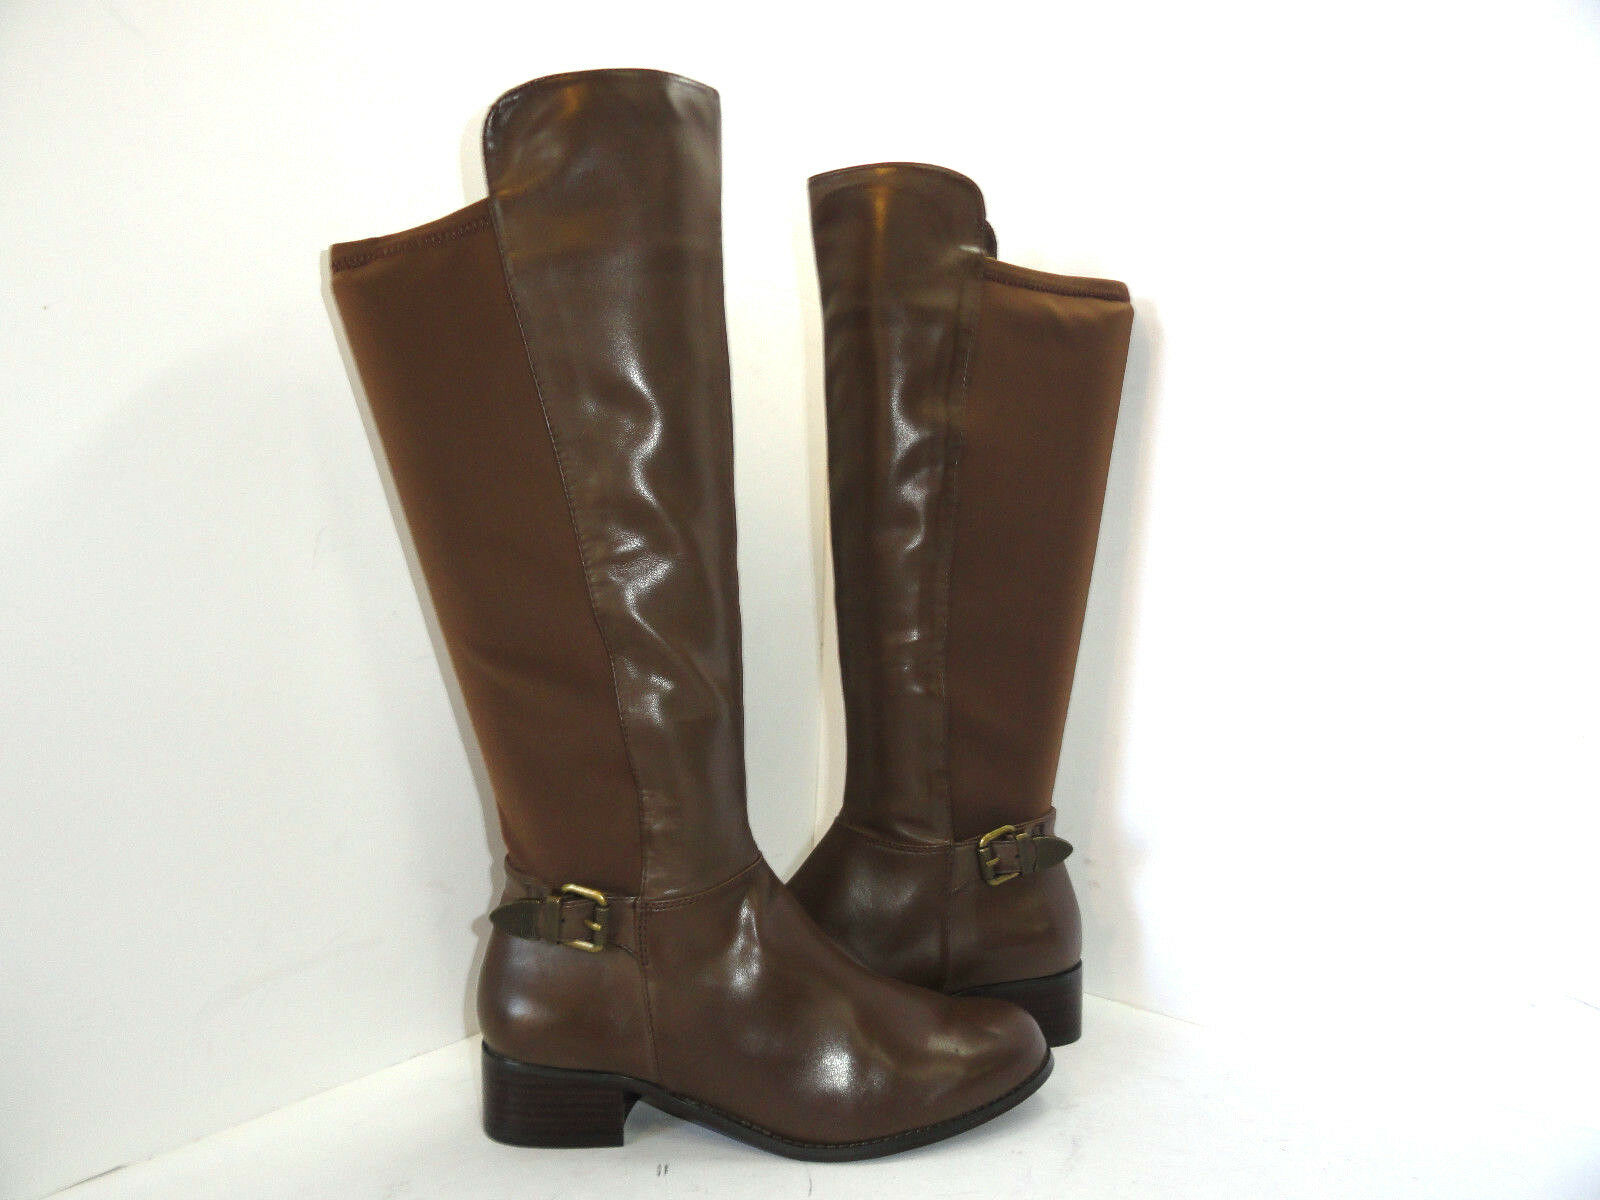 Charles by Charles David Women's Brown Leather Knee High Riding Boots Size 8.5